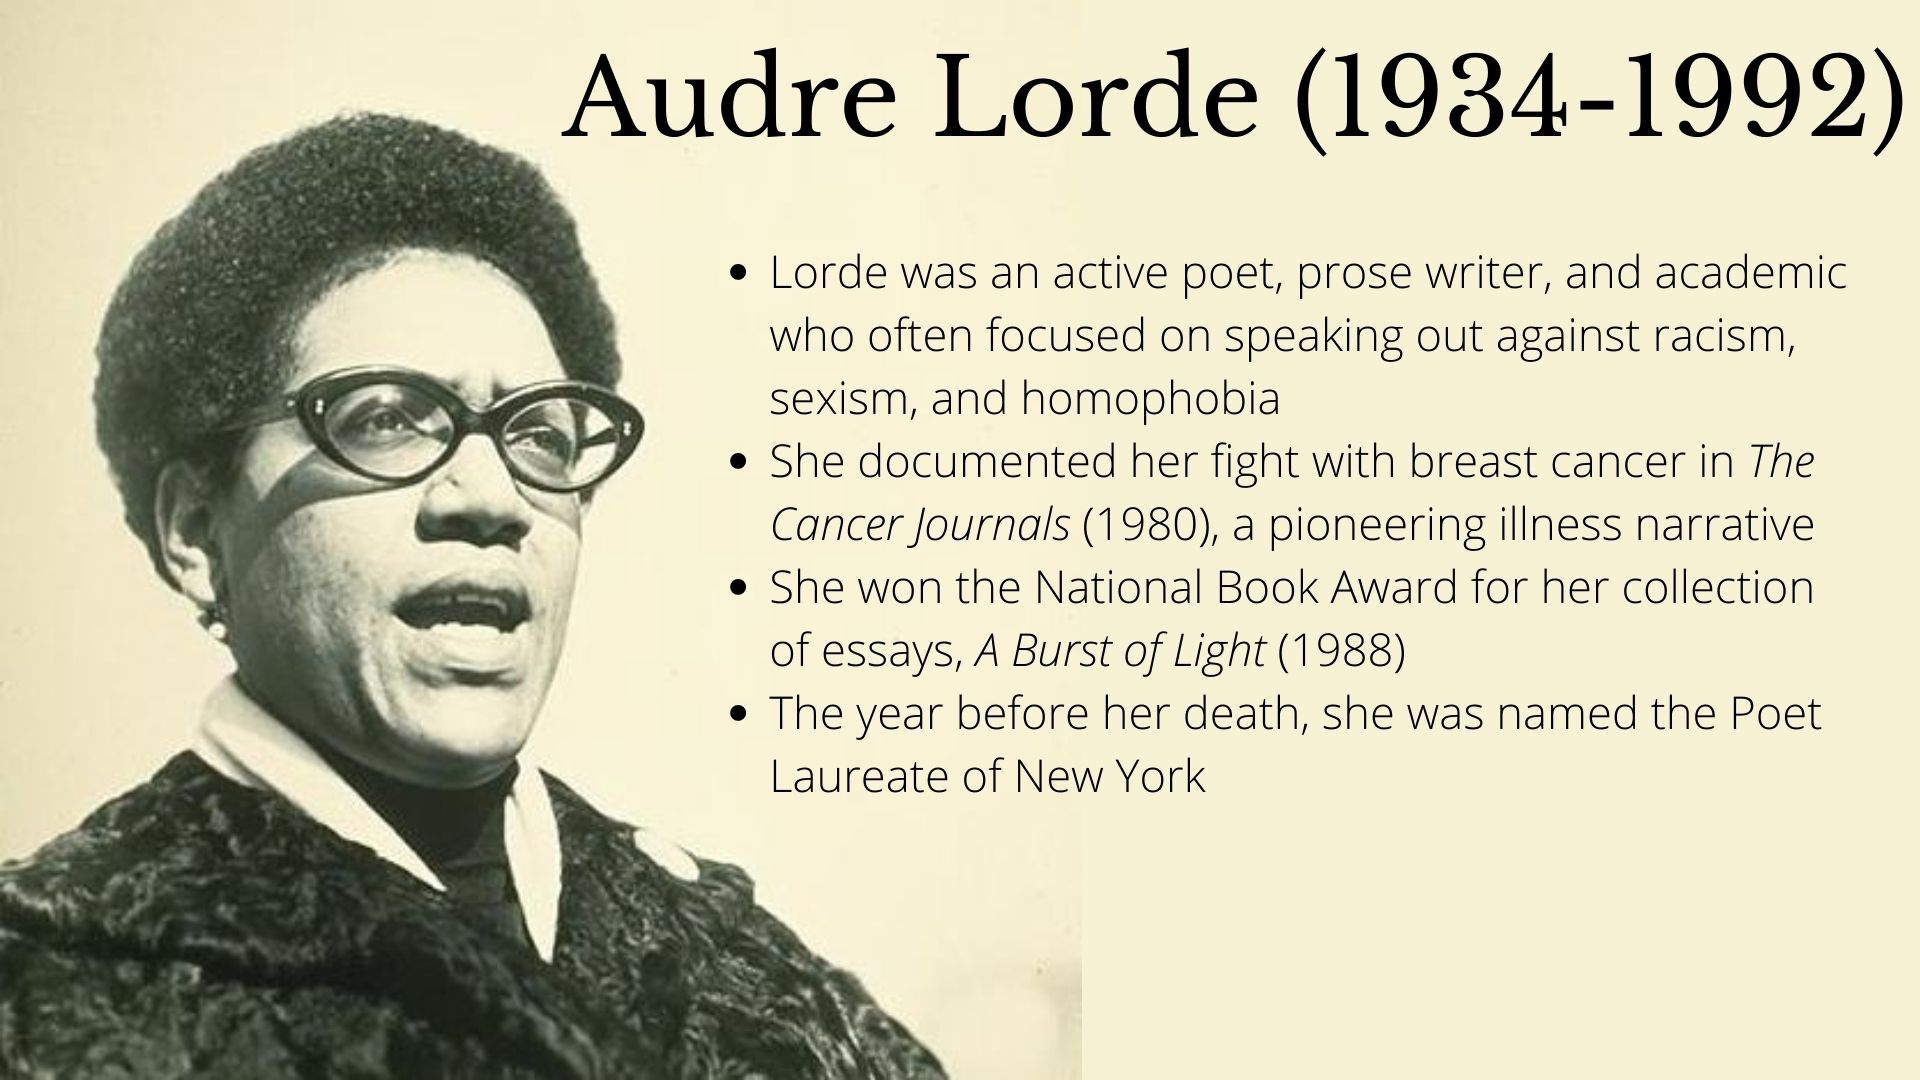 Audre Lorde (1934-1992) Lorde was an active poet, prose writer, and academic who often focused on speaking out against racism, sexism, and homophobia She documented her fight with breast cancer in The Cancer Journals (1980), a pioneering illness narrative She won the National Book Award for her collection of essays, A Burst of Light (1988) The year before her death, she was named the Poet Laureate of New York